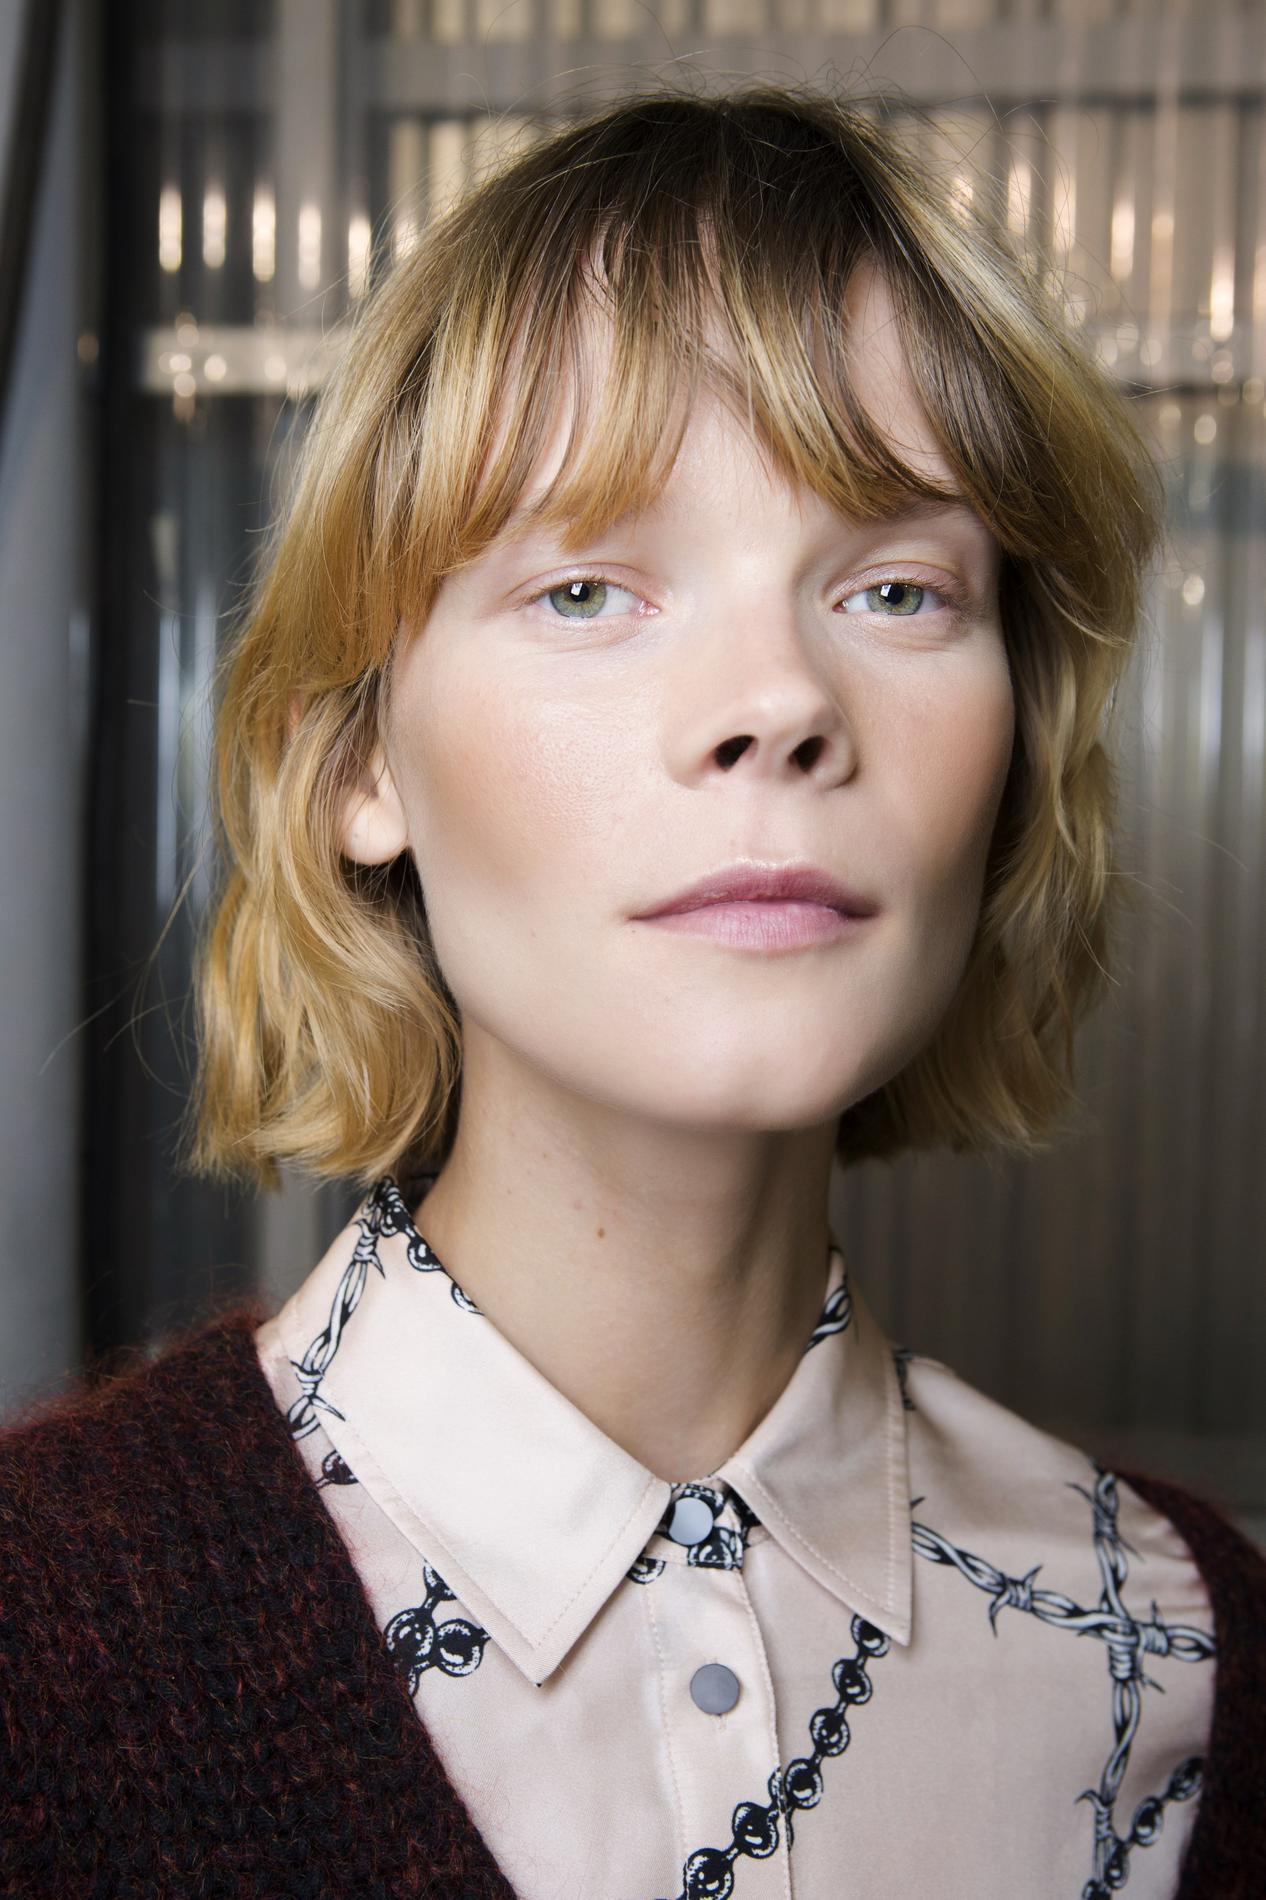 Quelle Coupe Adopter Quand On A Les Cheveux Fins Madame Figaro